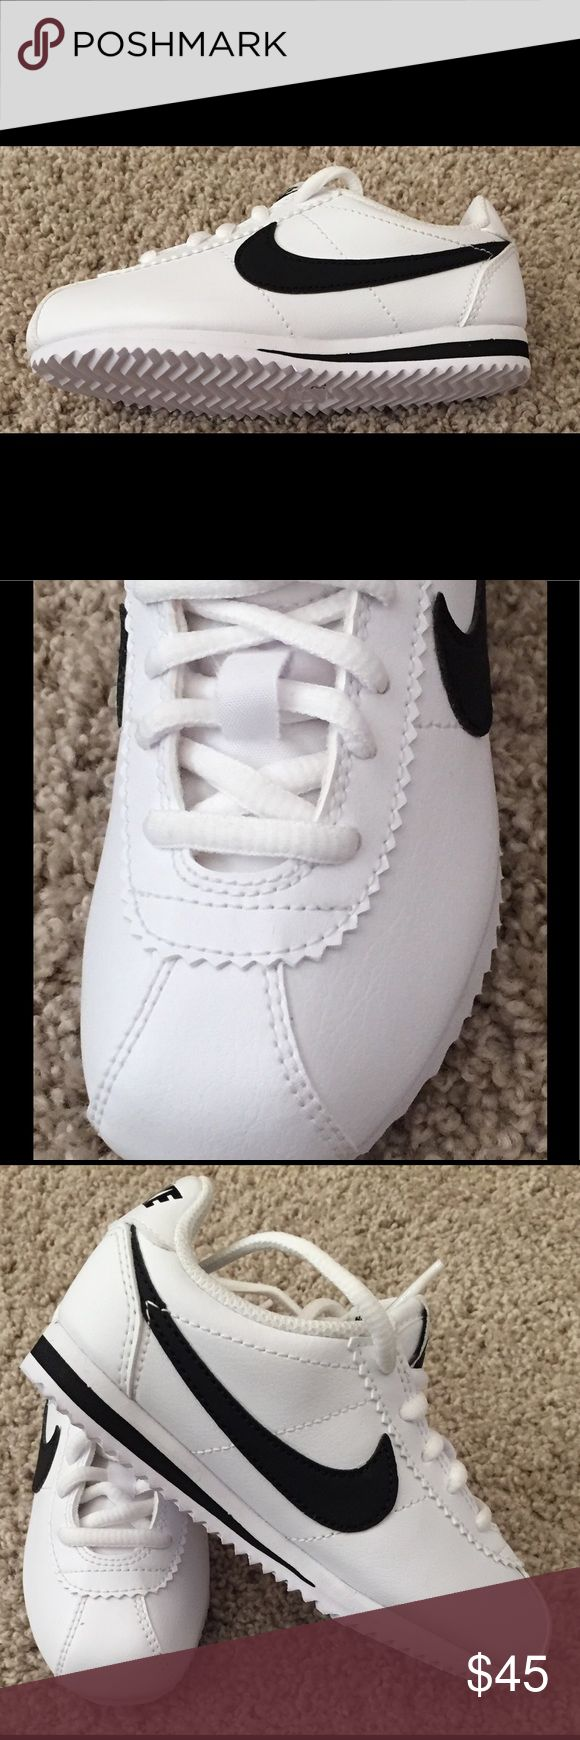 Nike Cortez kids size 12 White leather retro style Nike Cortez. A classic must-have for any stylish kid. So cute! Perfect for spring and summer.  Brand new never worn but they no longer have the tags or box.  No defects, flawless condition 10/10. Nike Shoes Sneakers